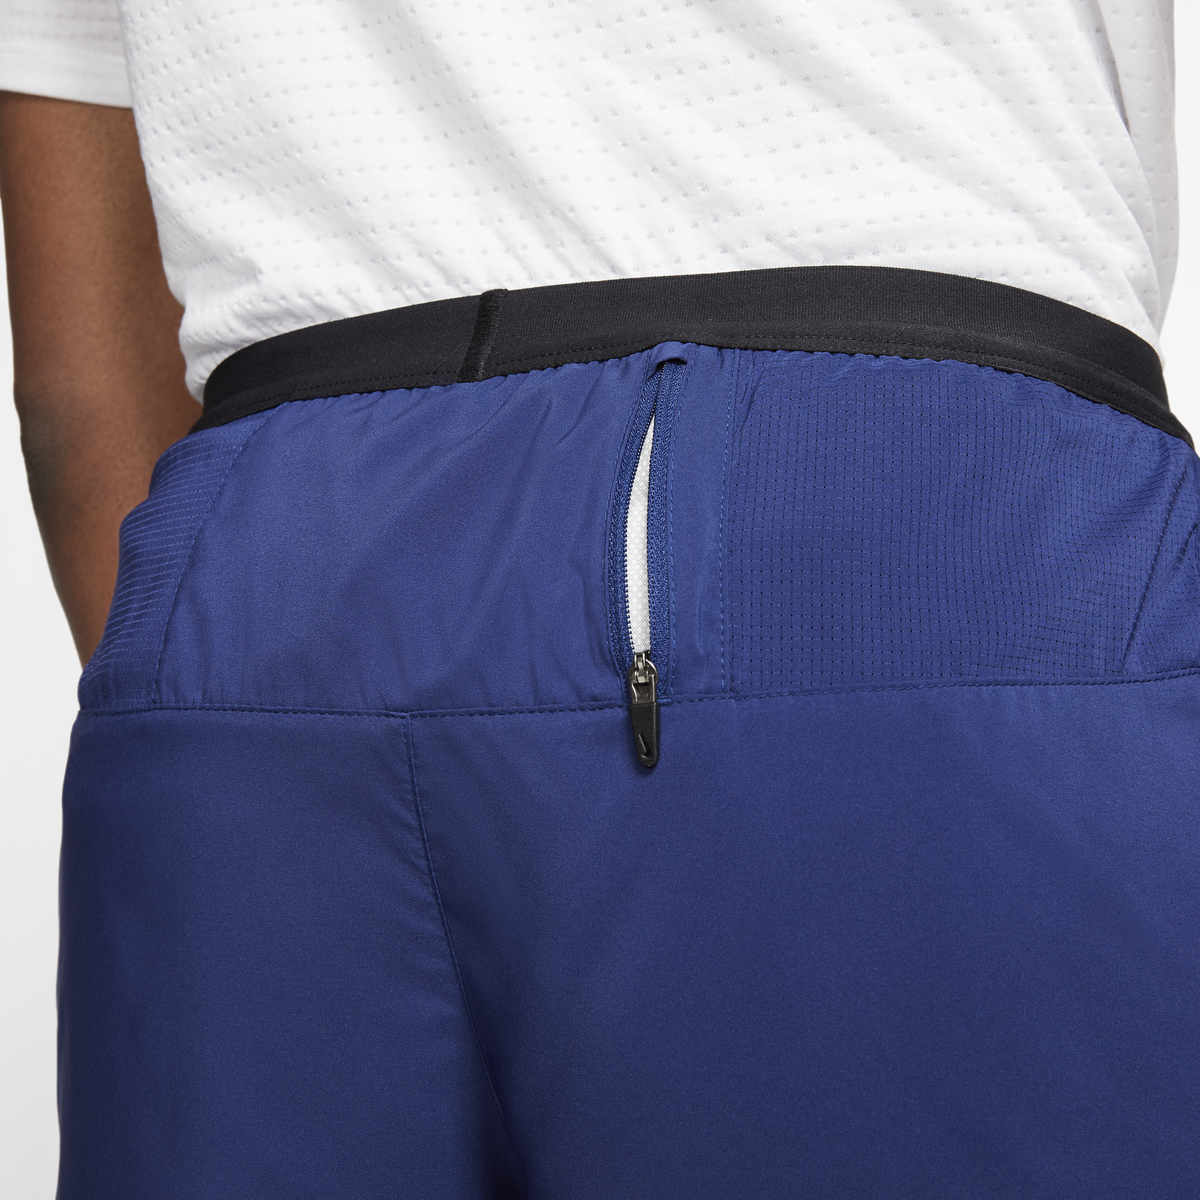 Nike Mens Flex Stride Blue Ribbon Sports Shorts